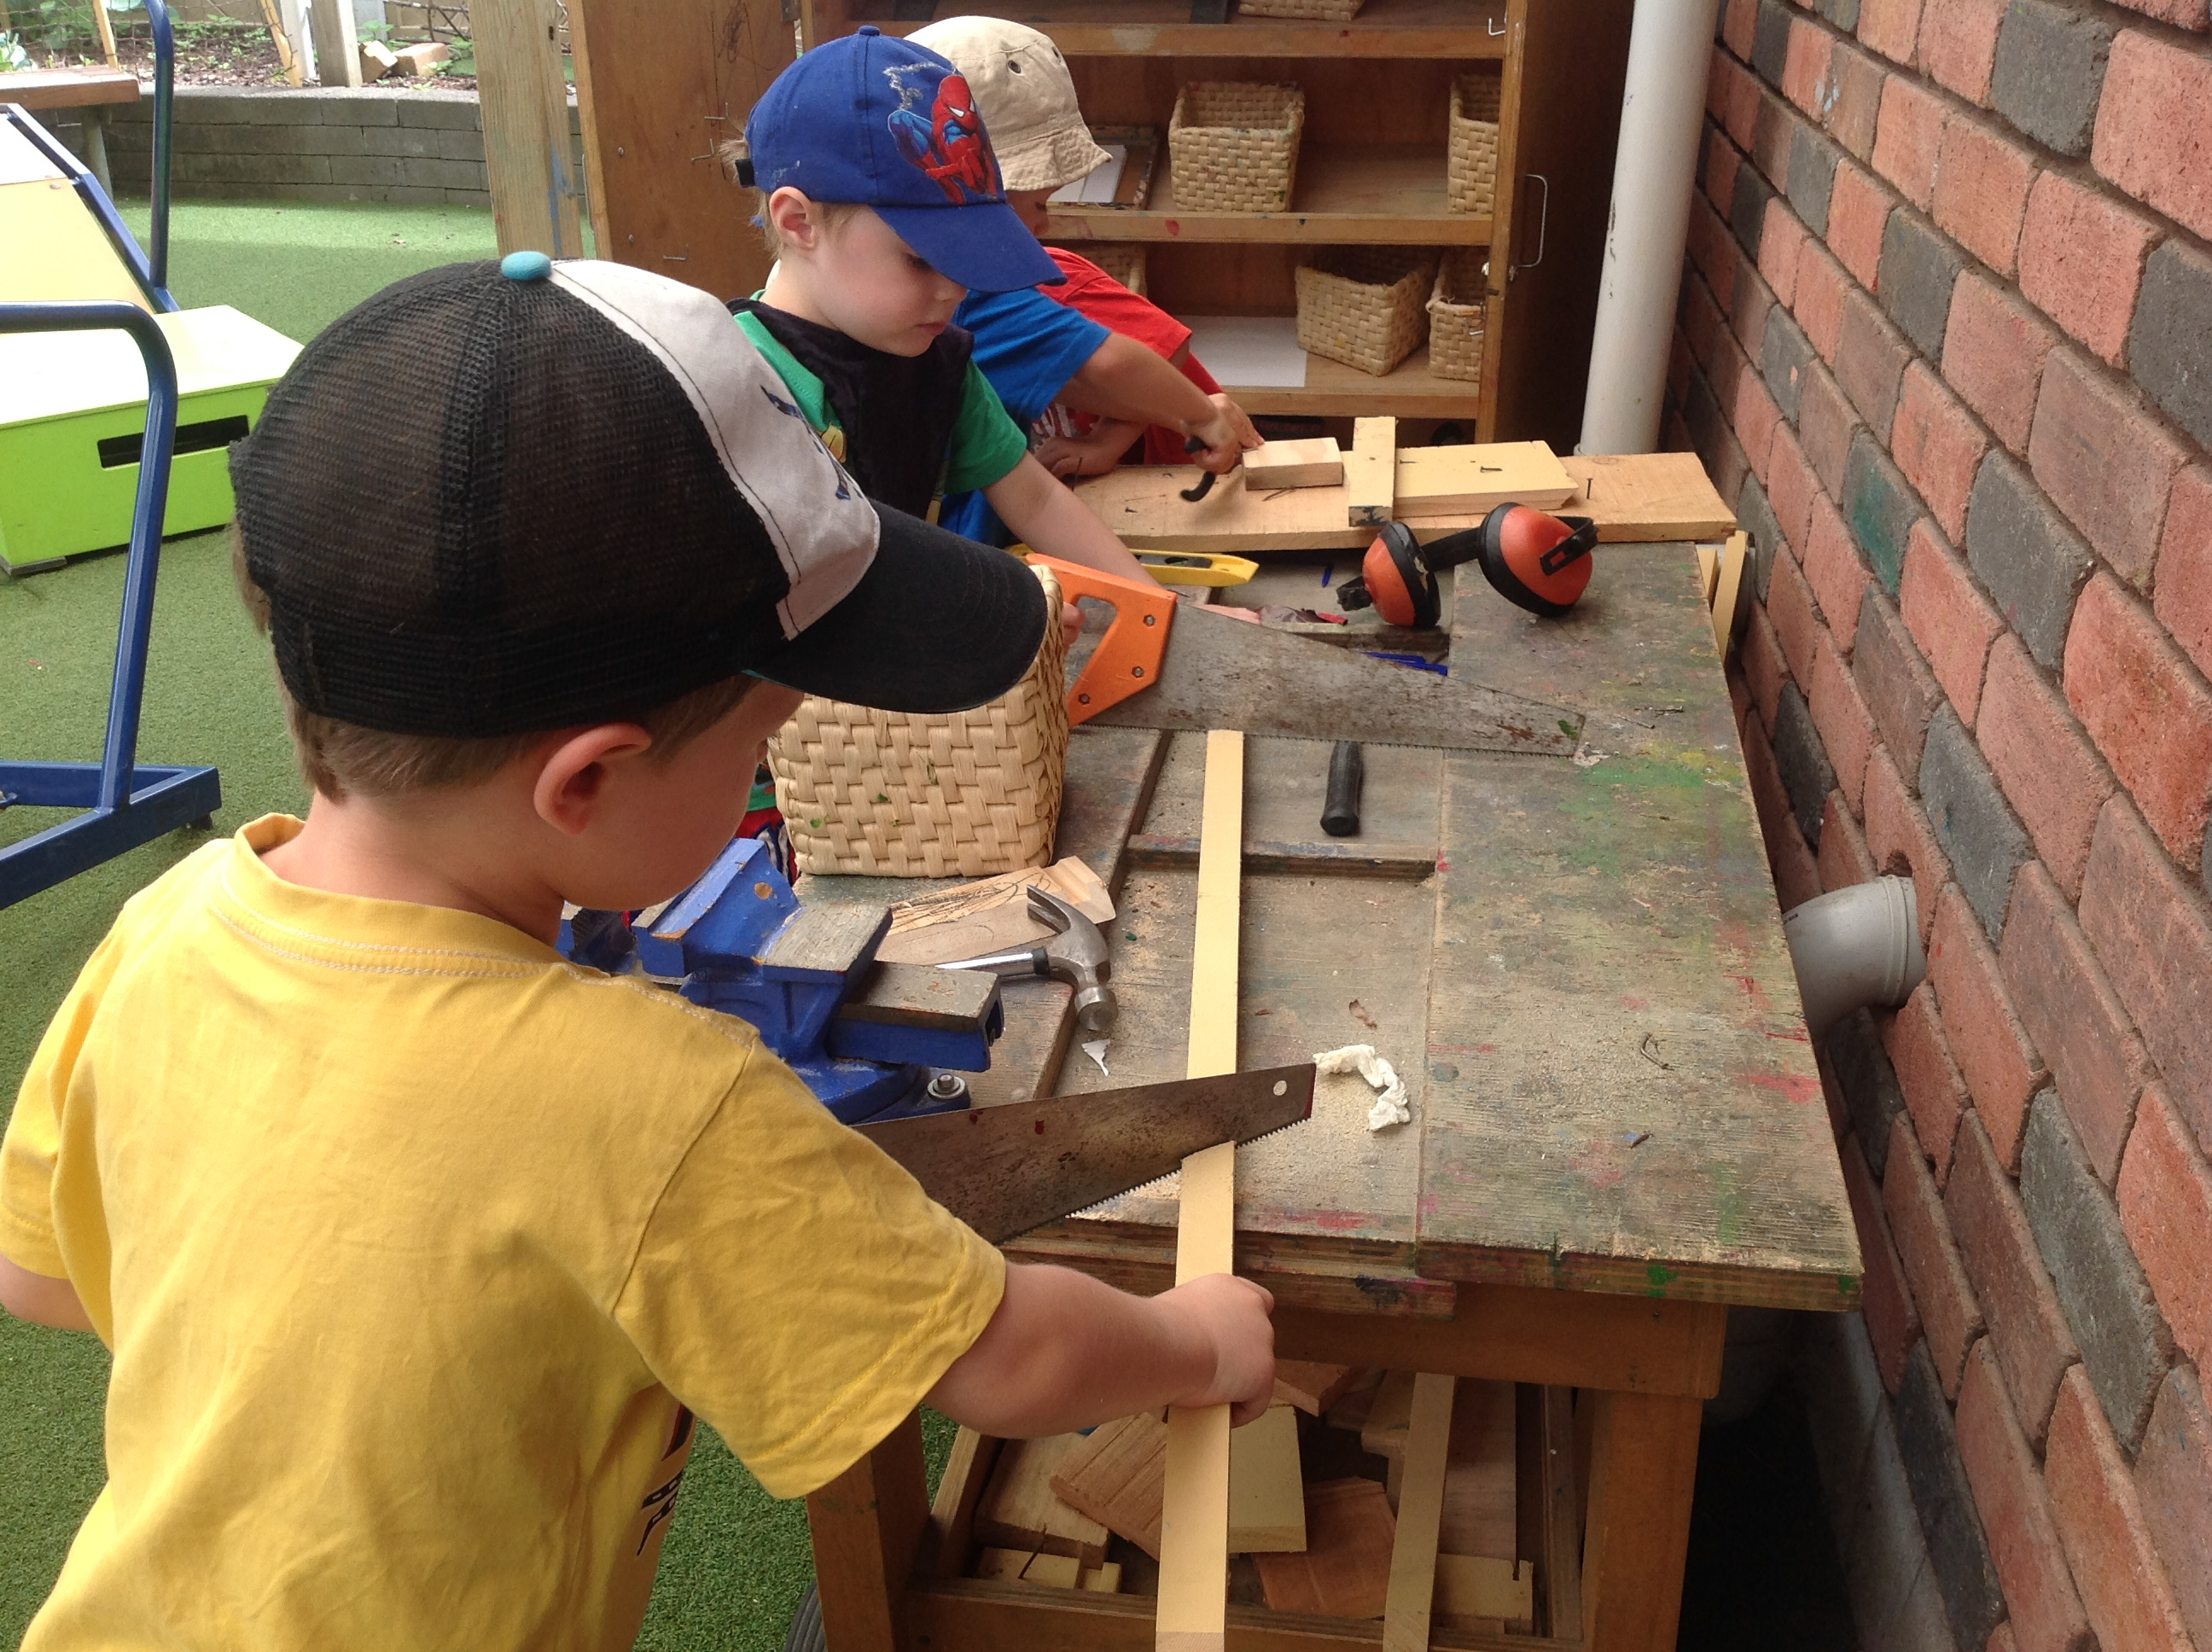 young children at carpentry play